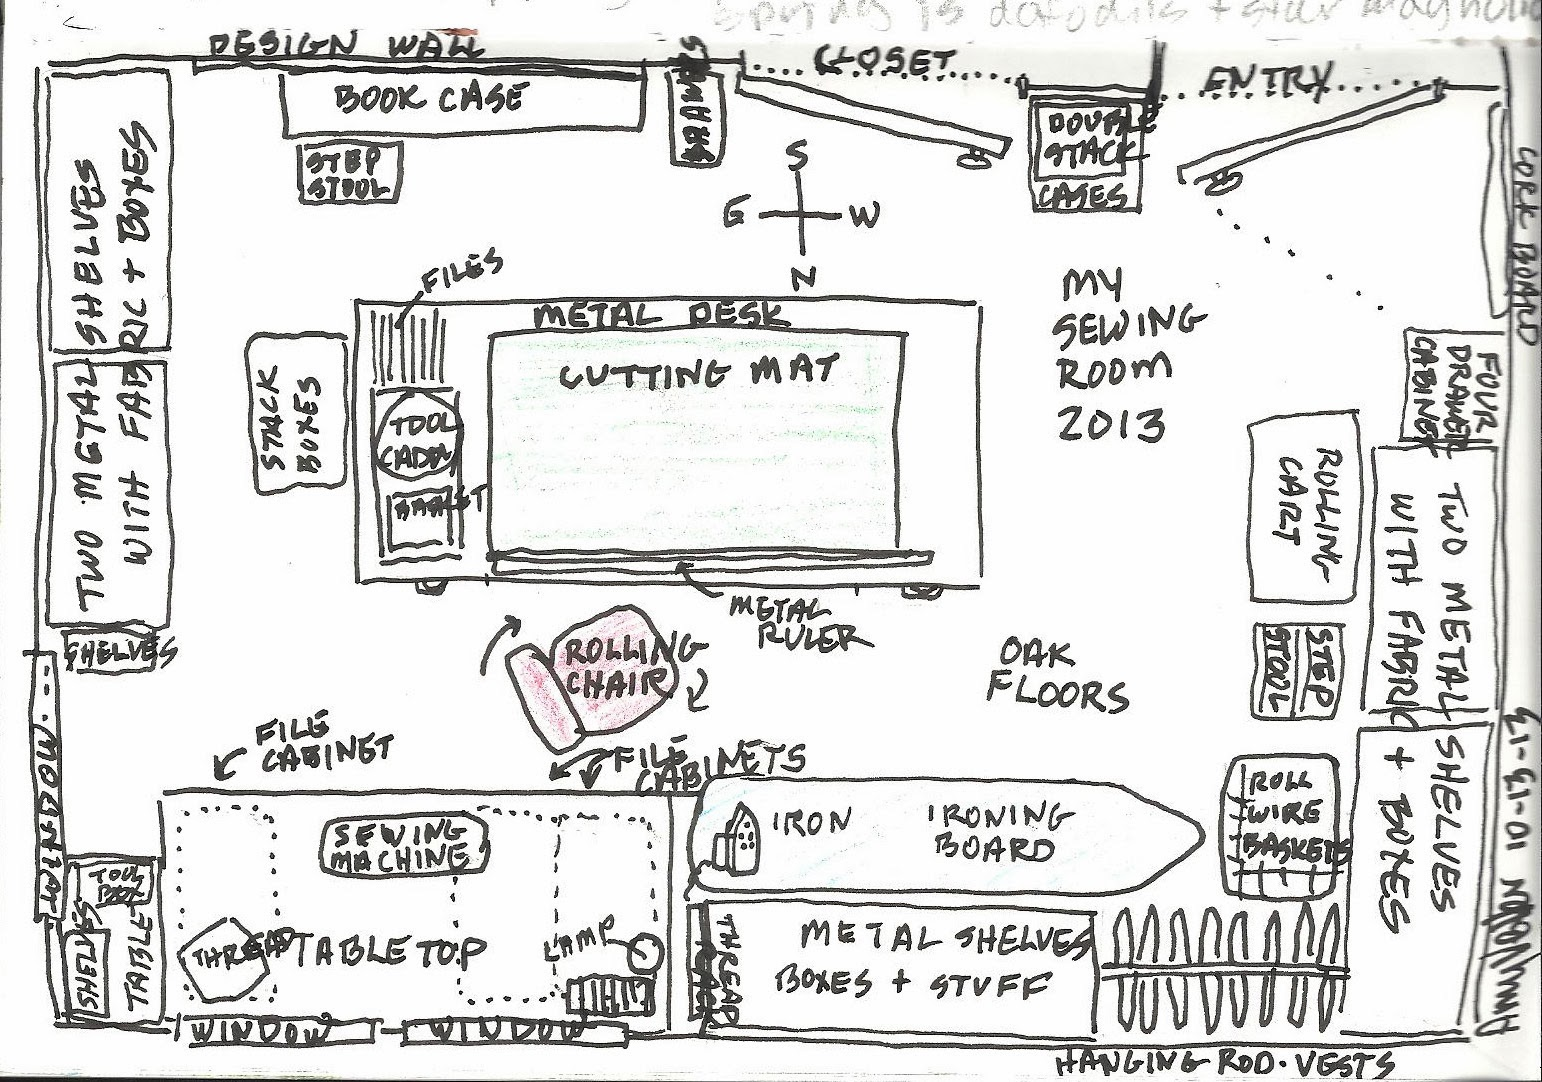 Amy 39 s etcetera sewing room diagram Room layout design online